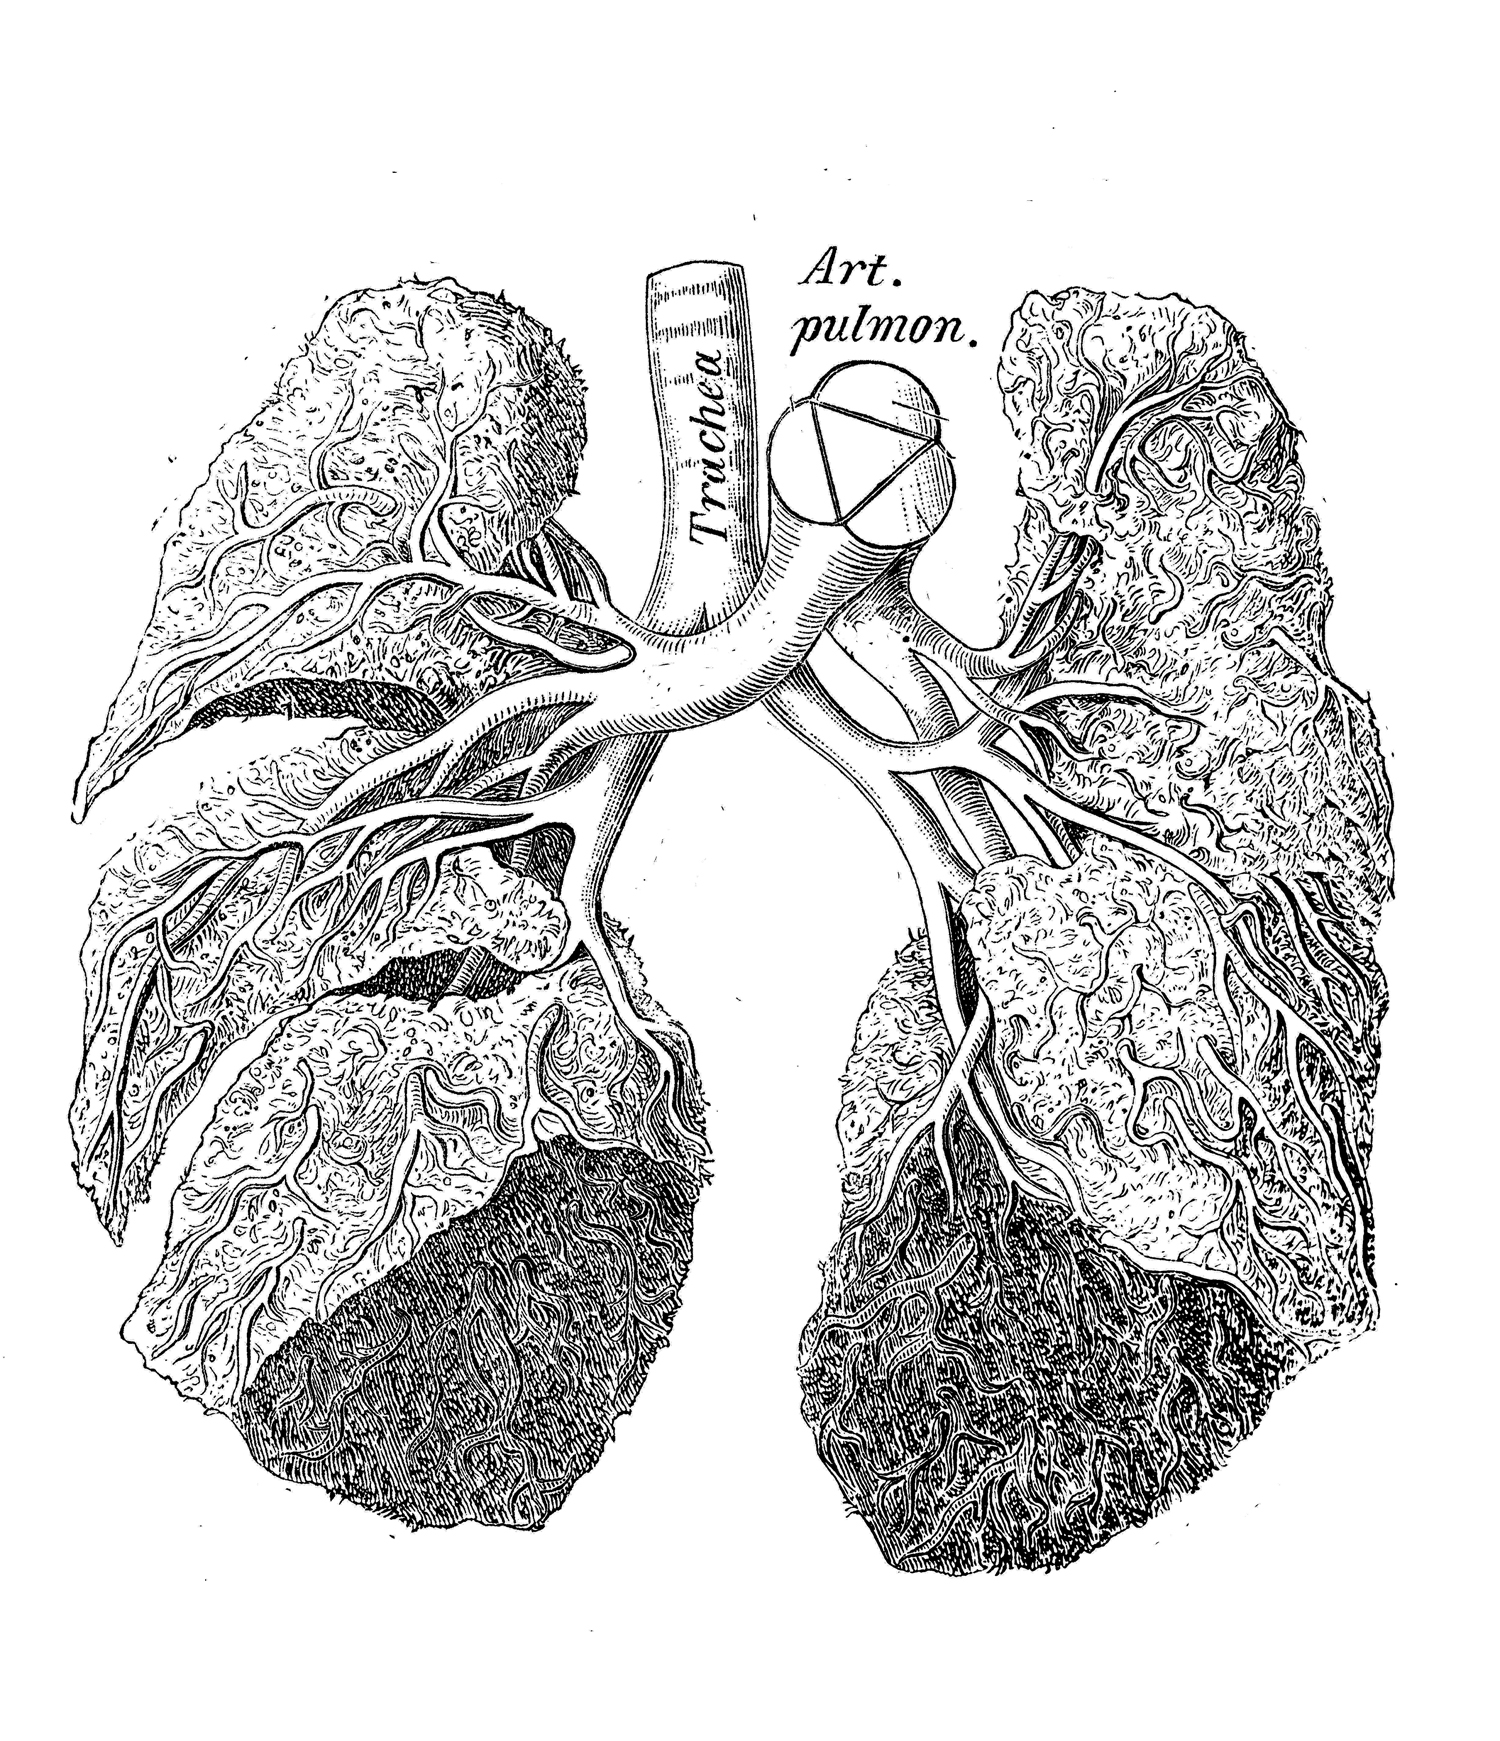 Sep 22 Workshop On Phenotyping Mouse Models Of Human Lung